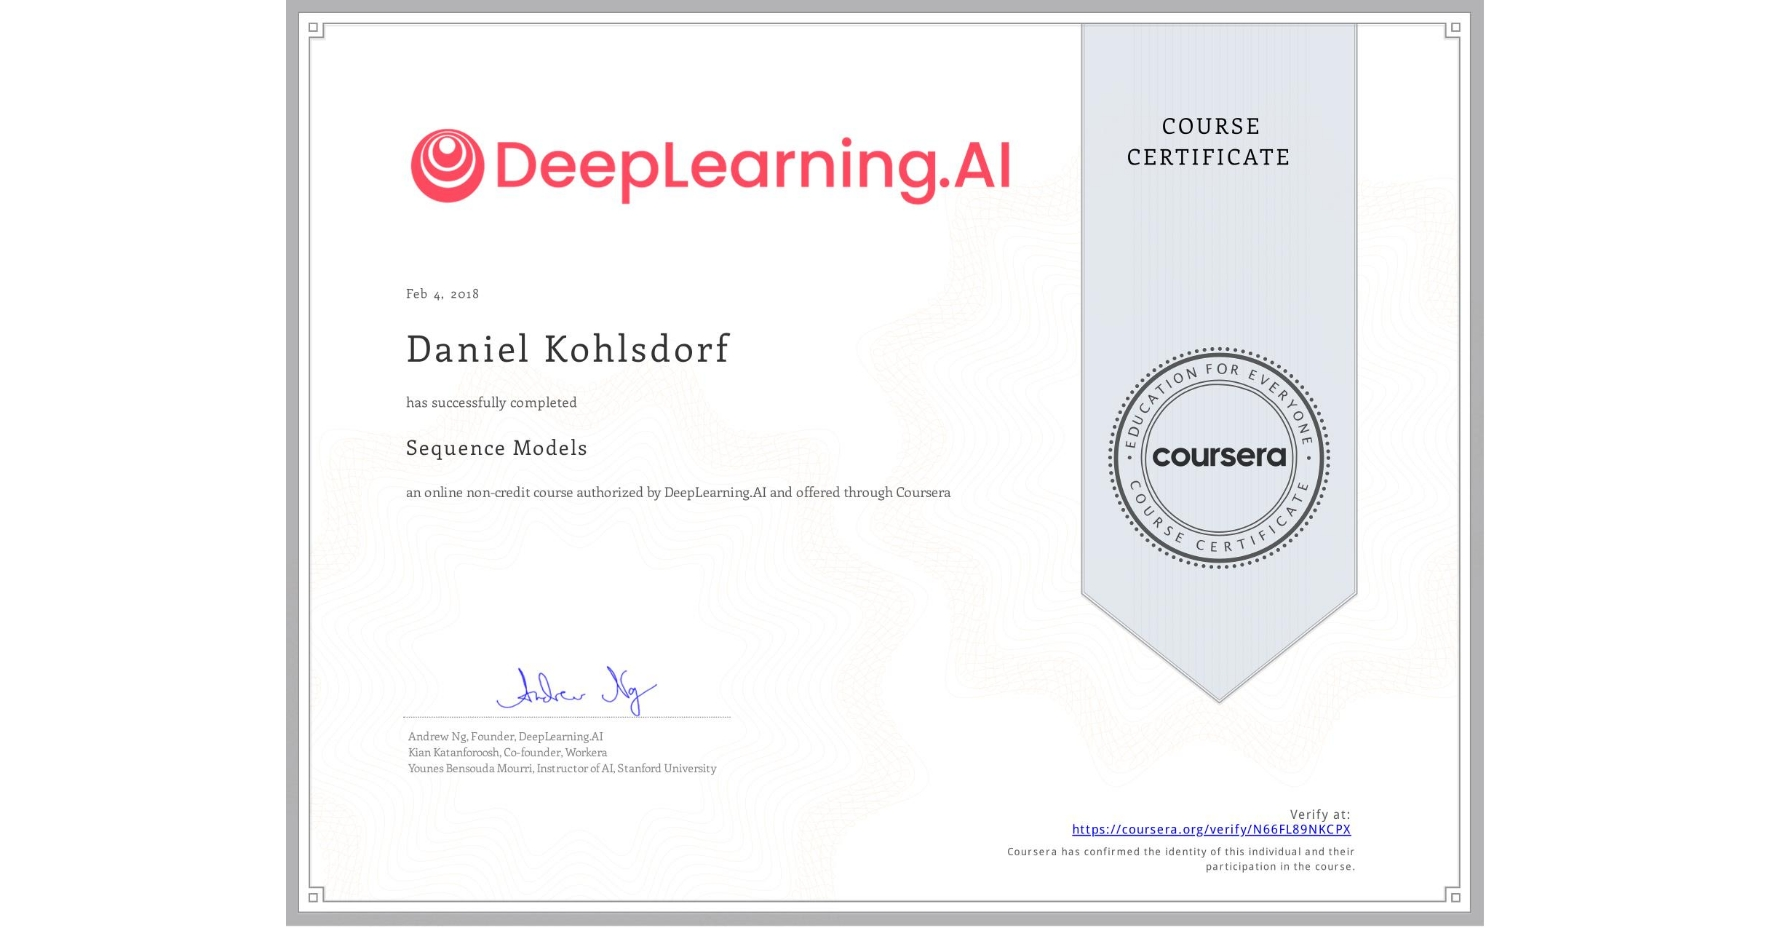 View certificate for Daniel Kohlsdorf, Sequence Models, an online non-credit course authorized by DeepLearning.AI and offered through Coursera